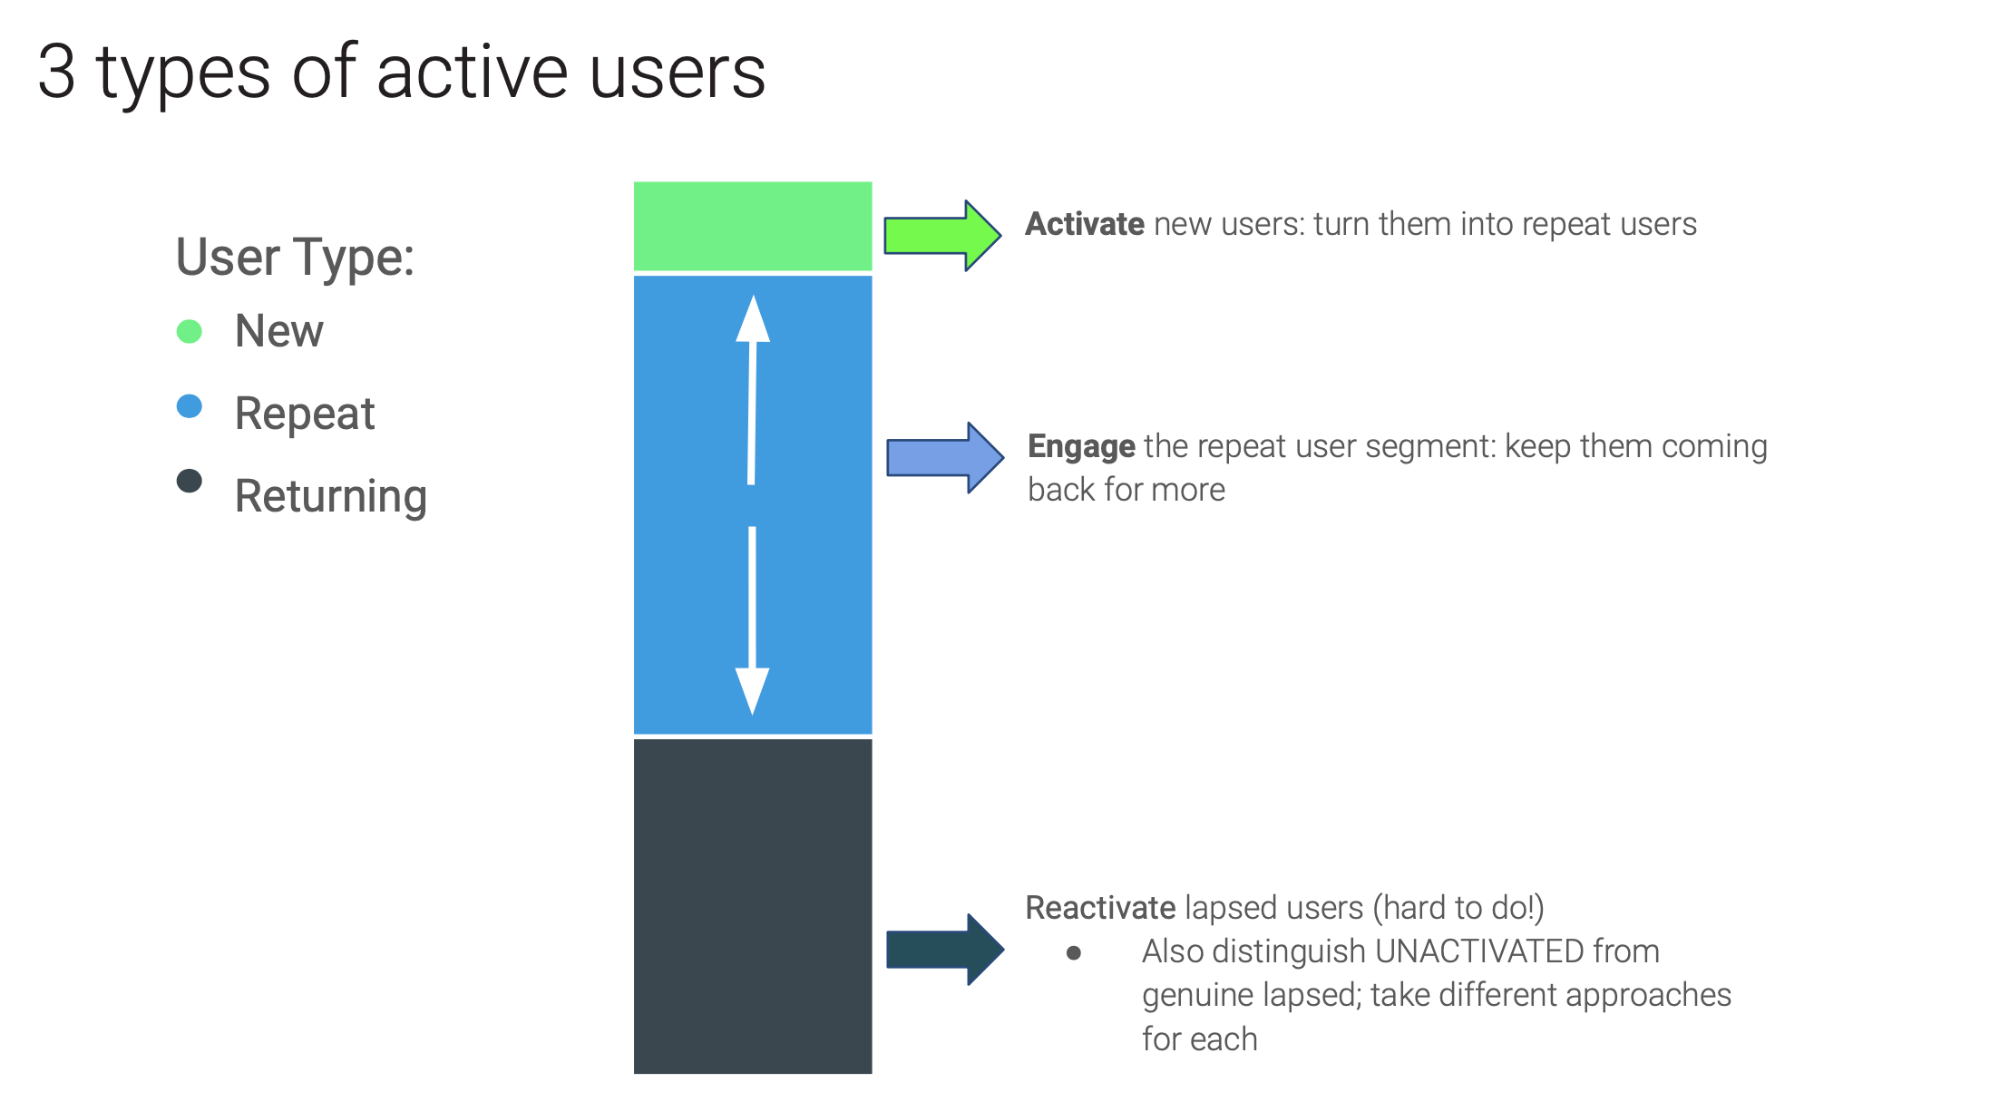 3 types of active users